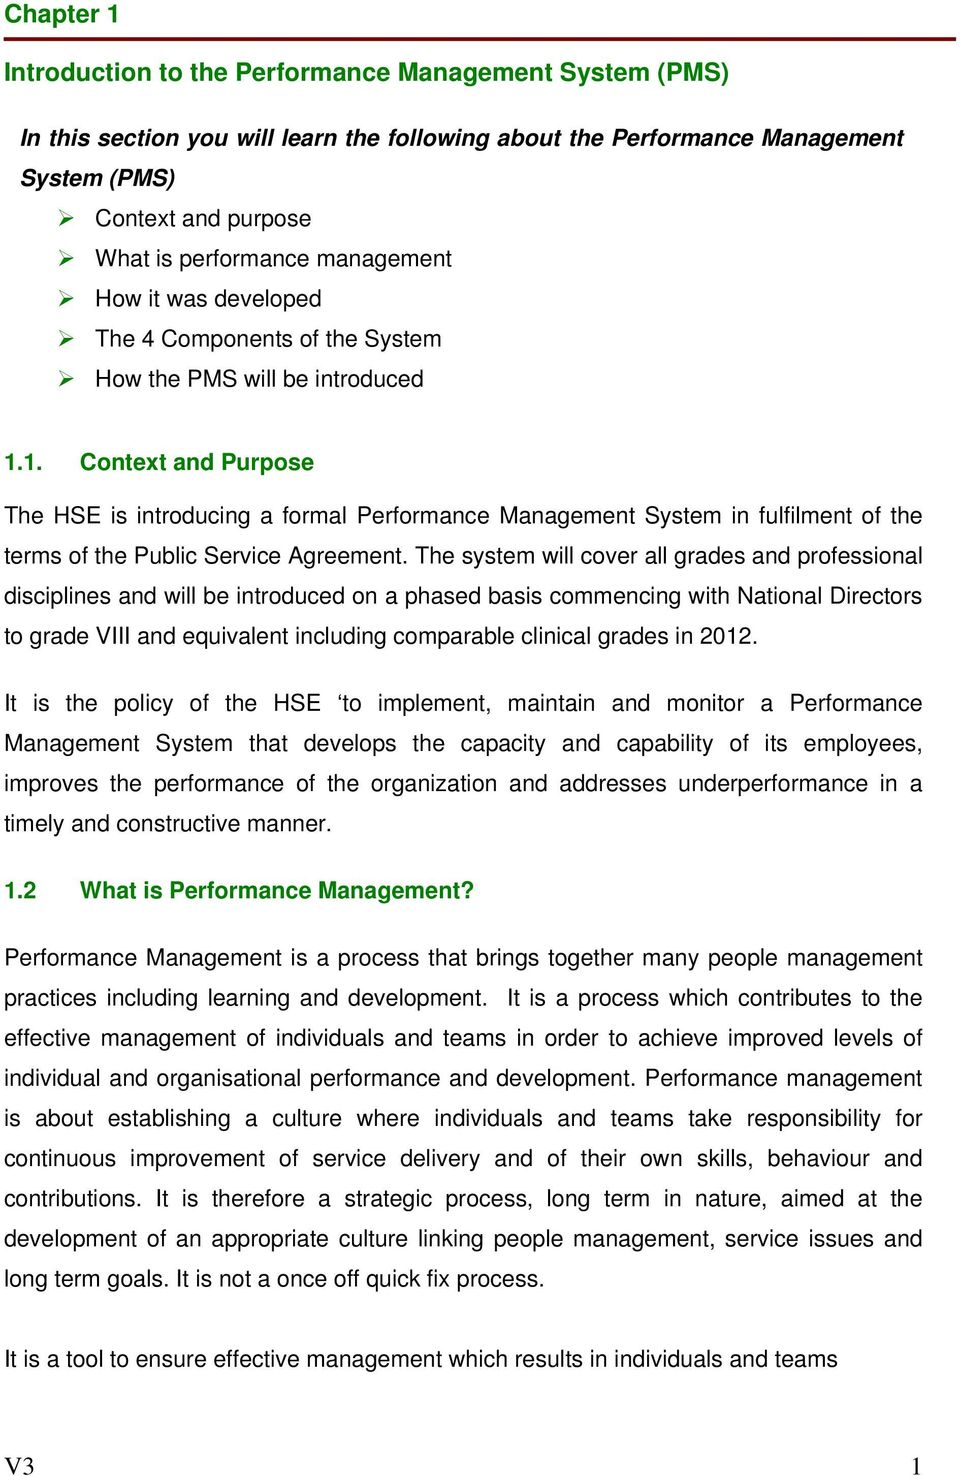 1. Context and Purpose The HSE is introducing a formal Performance Management System in fulfilment of the terms of the Public Service Agreement.